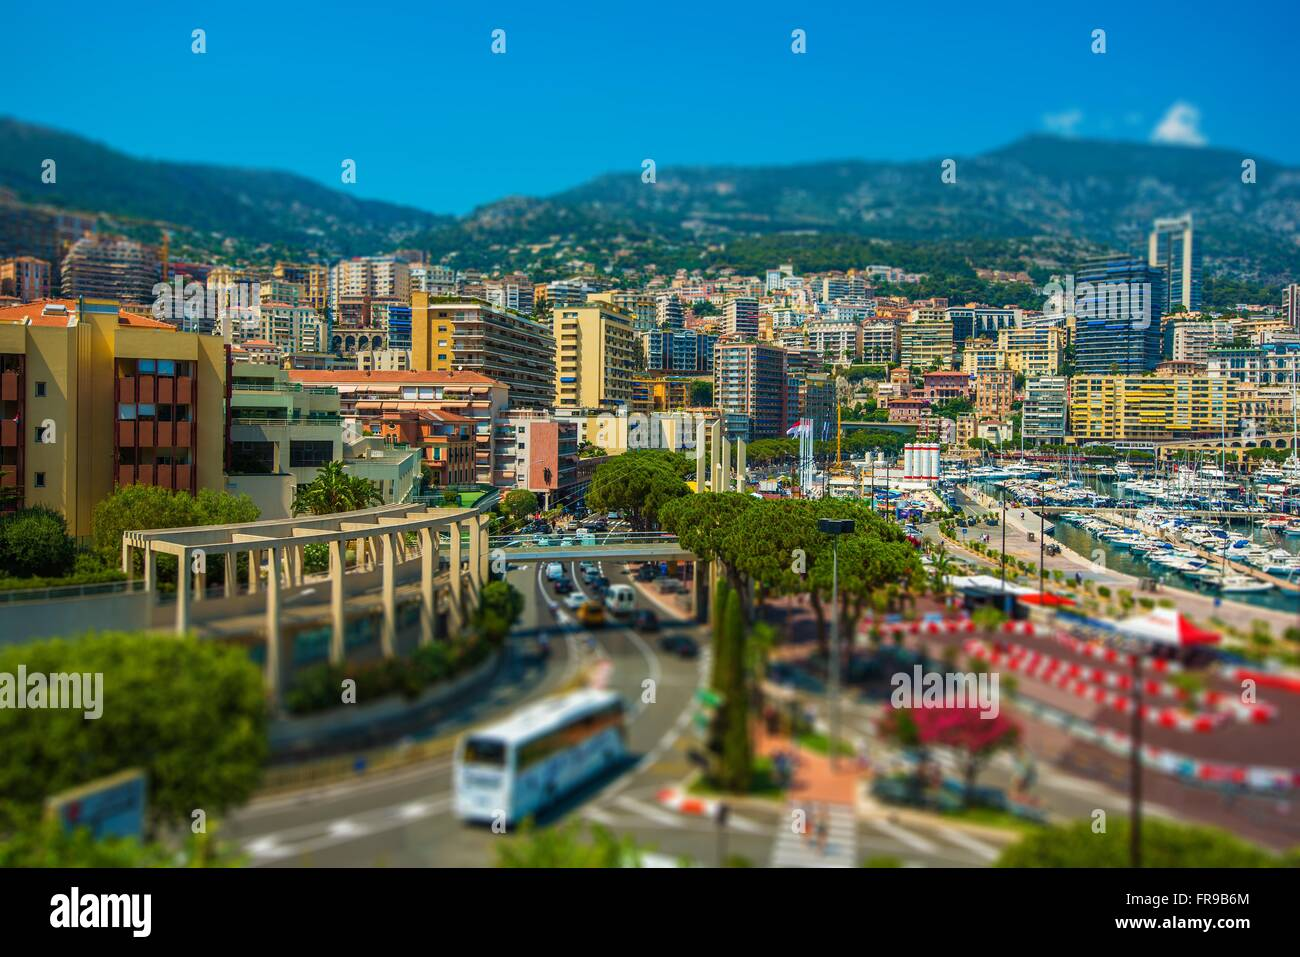 Monte Carlo Cityscape. Port Hercule and the City of Monte Carlo, Monaco. - Stock Image